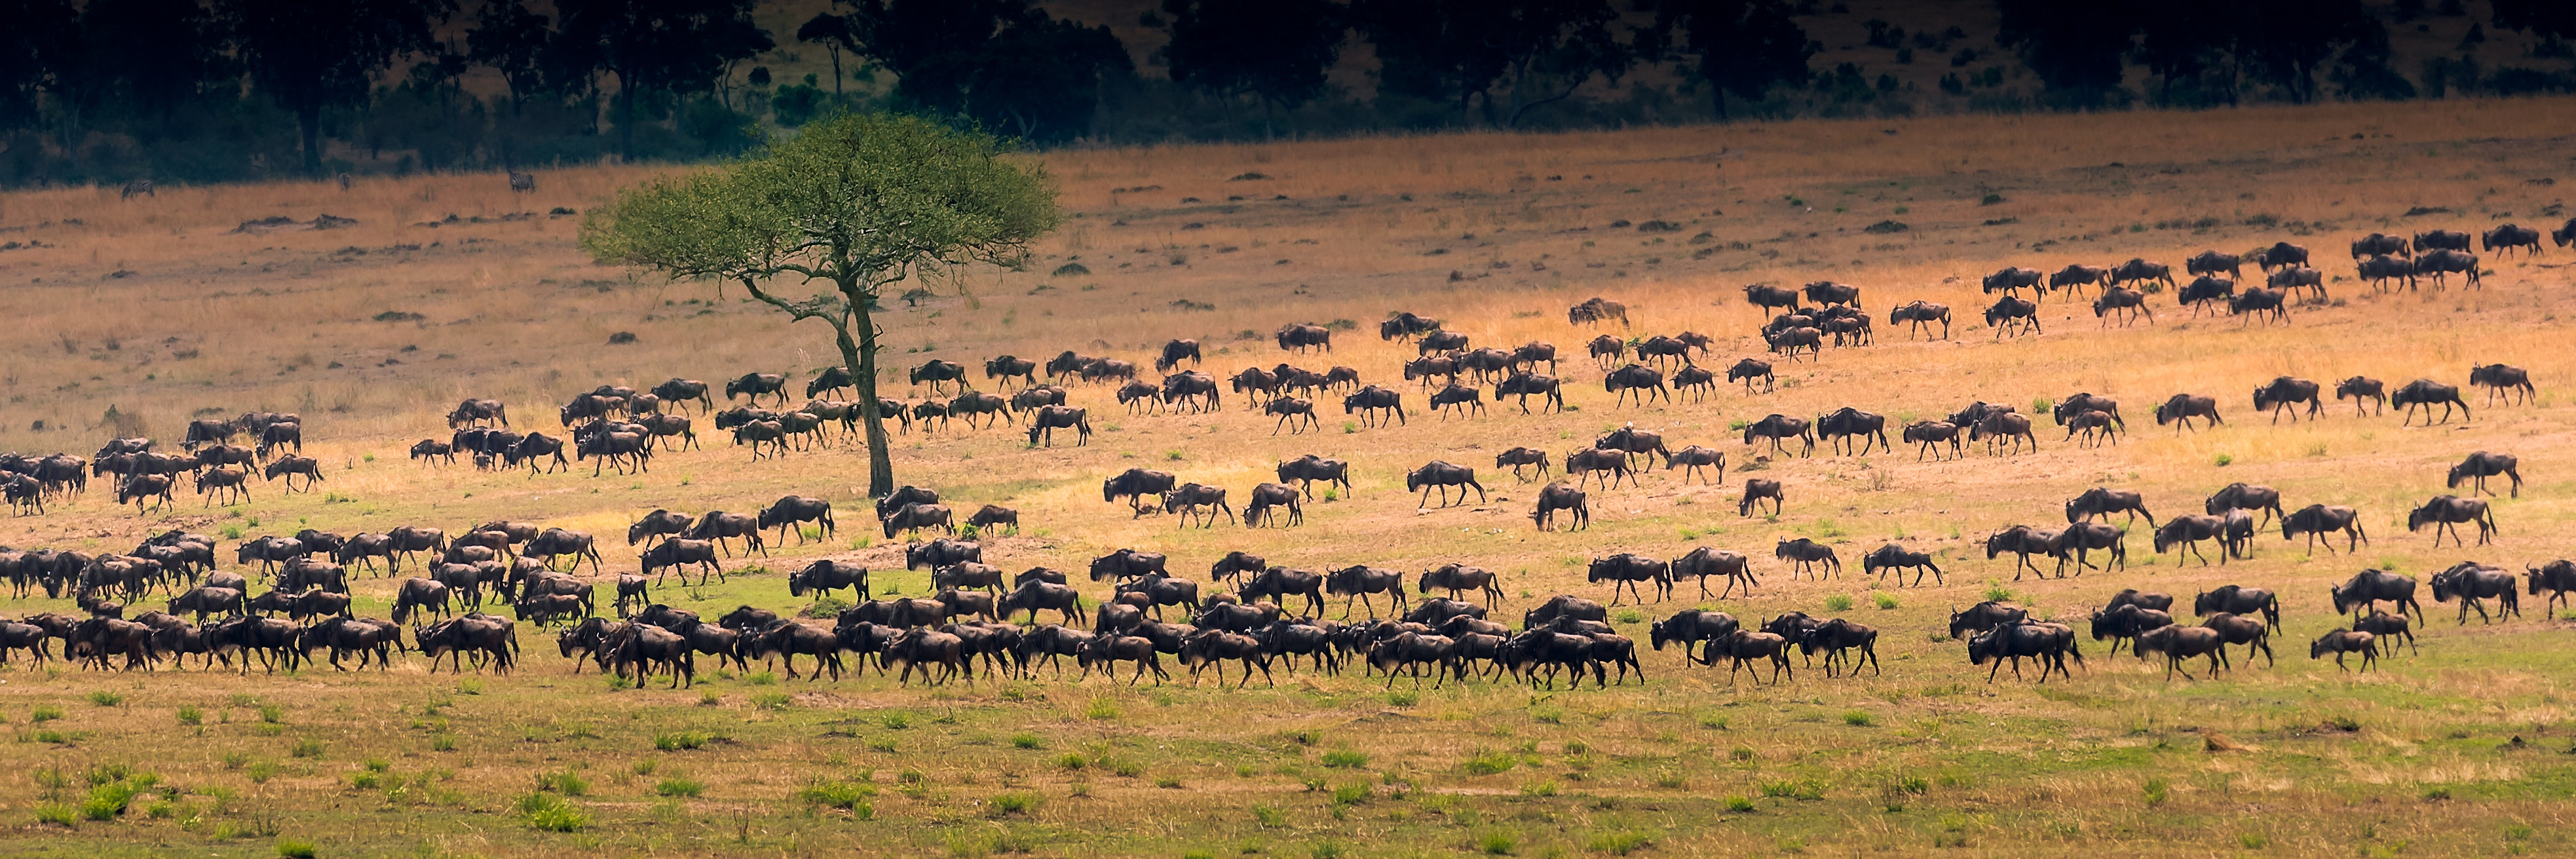 Serengeti - Wildebeest on the move